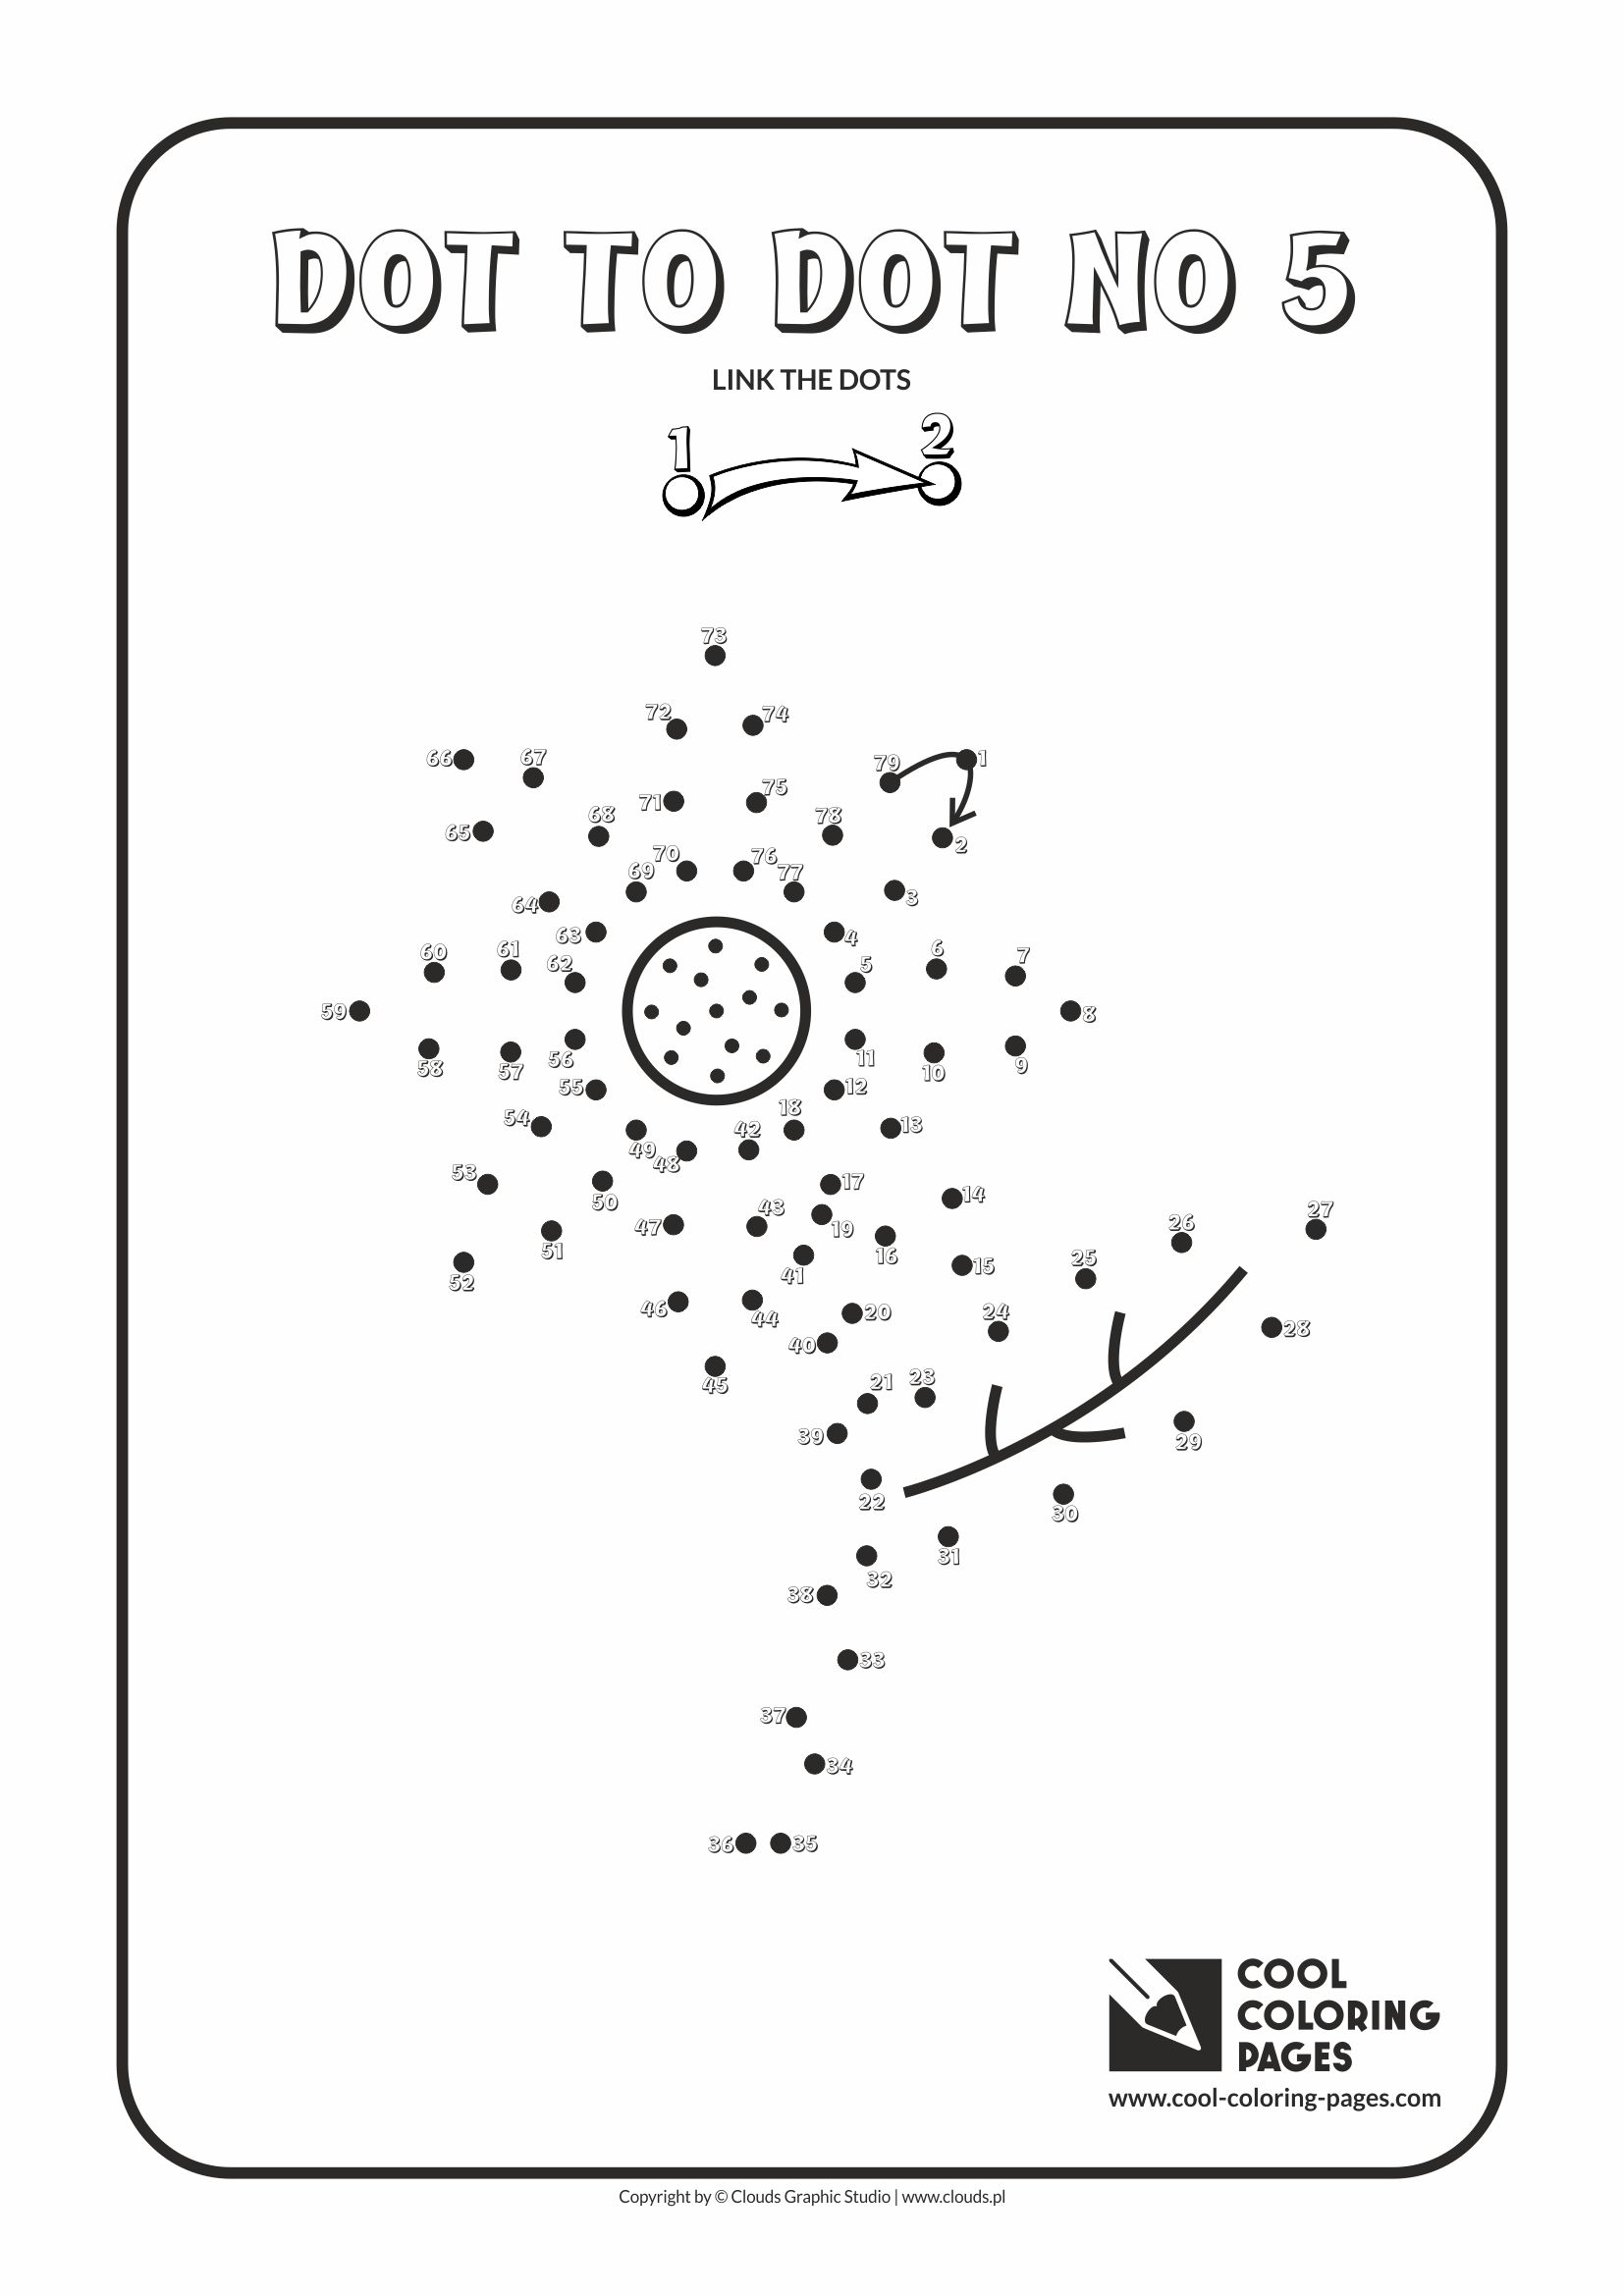 Cool Coloring Pages Dot To Dot